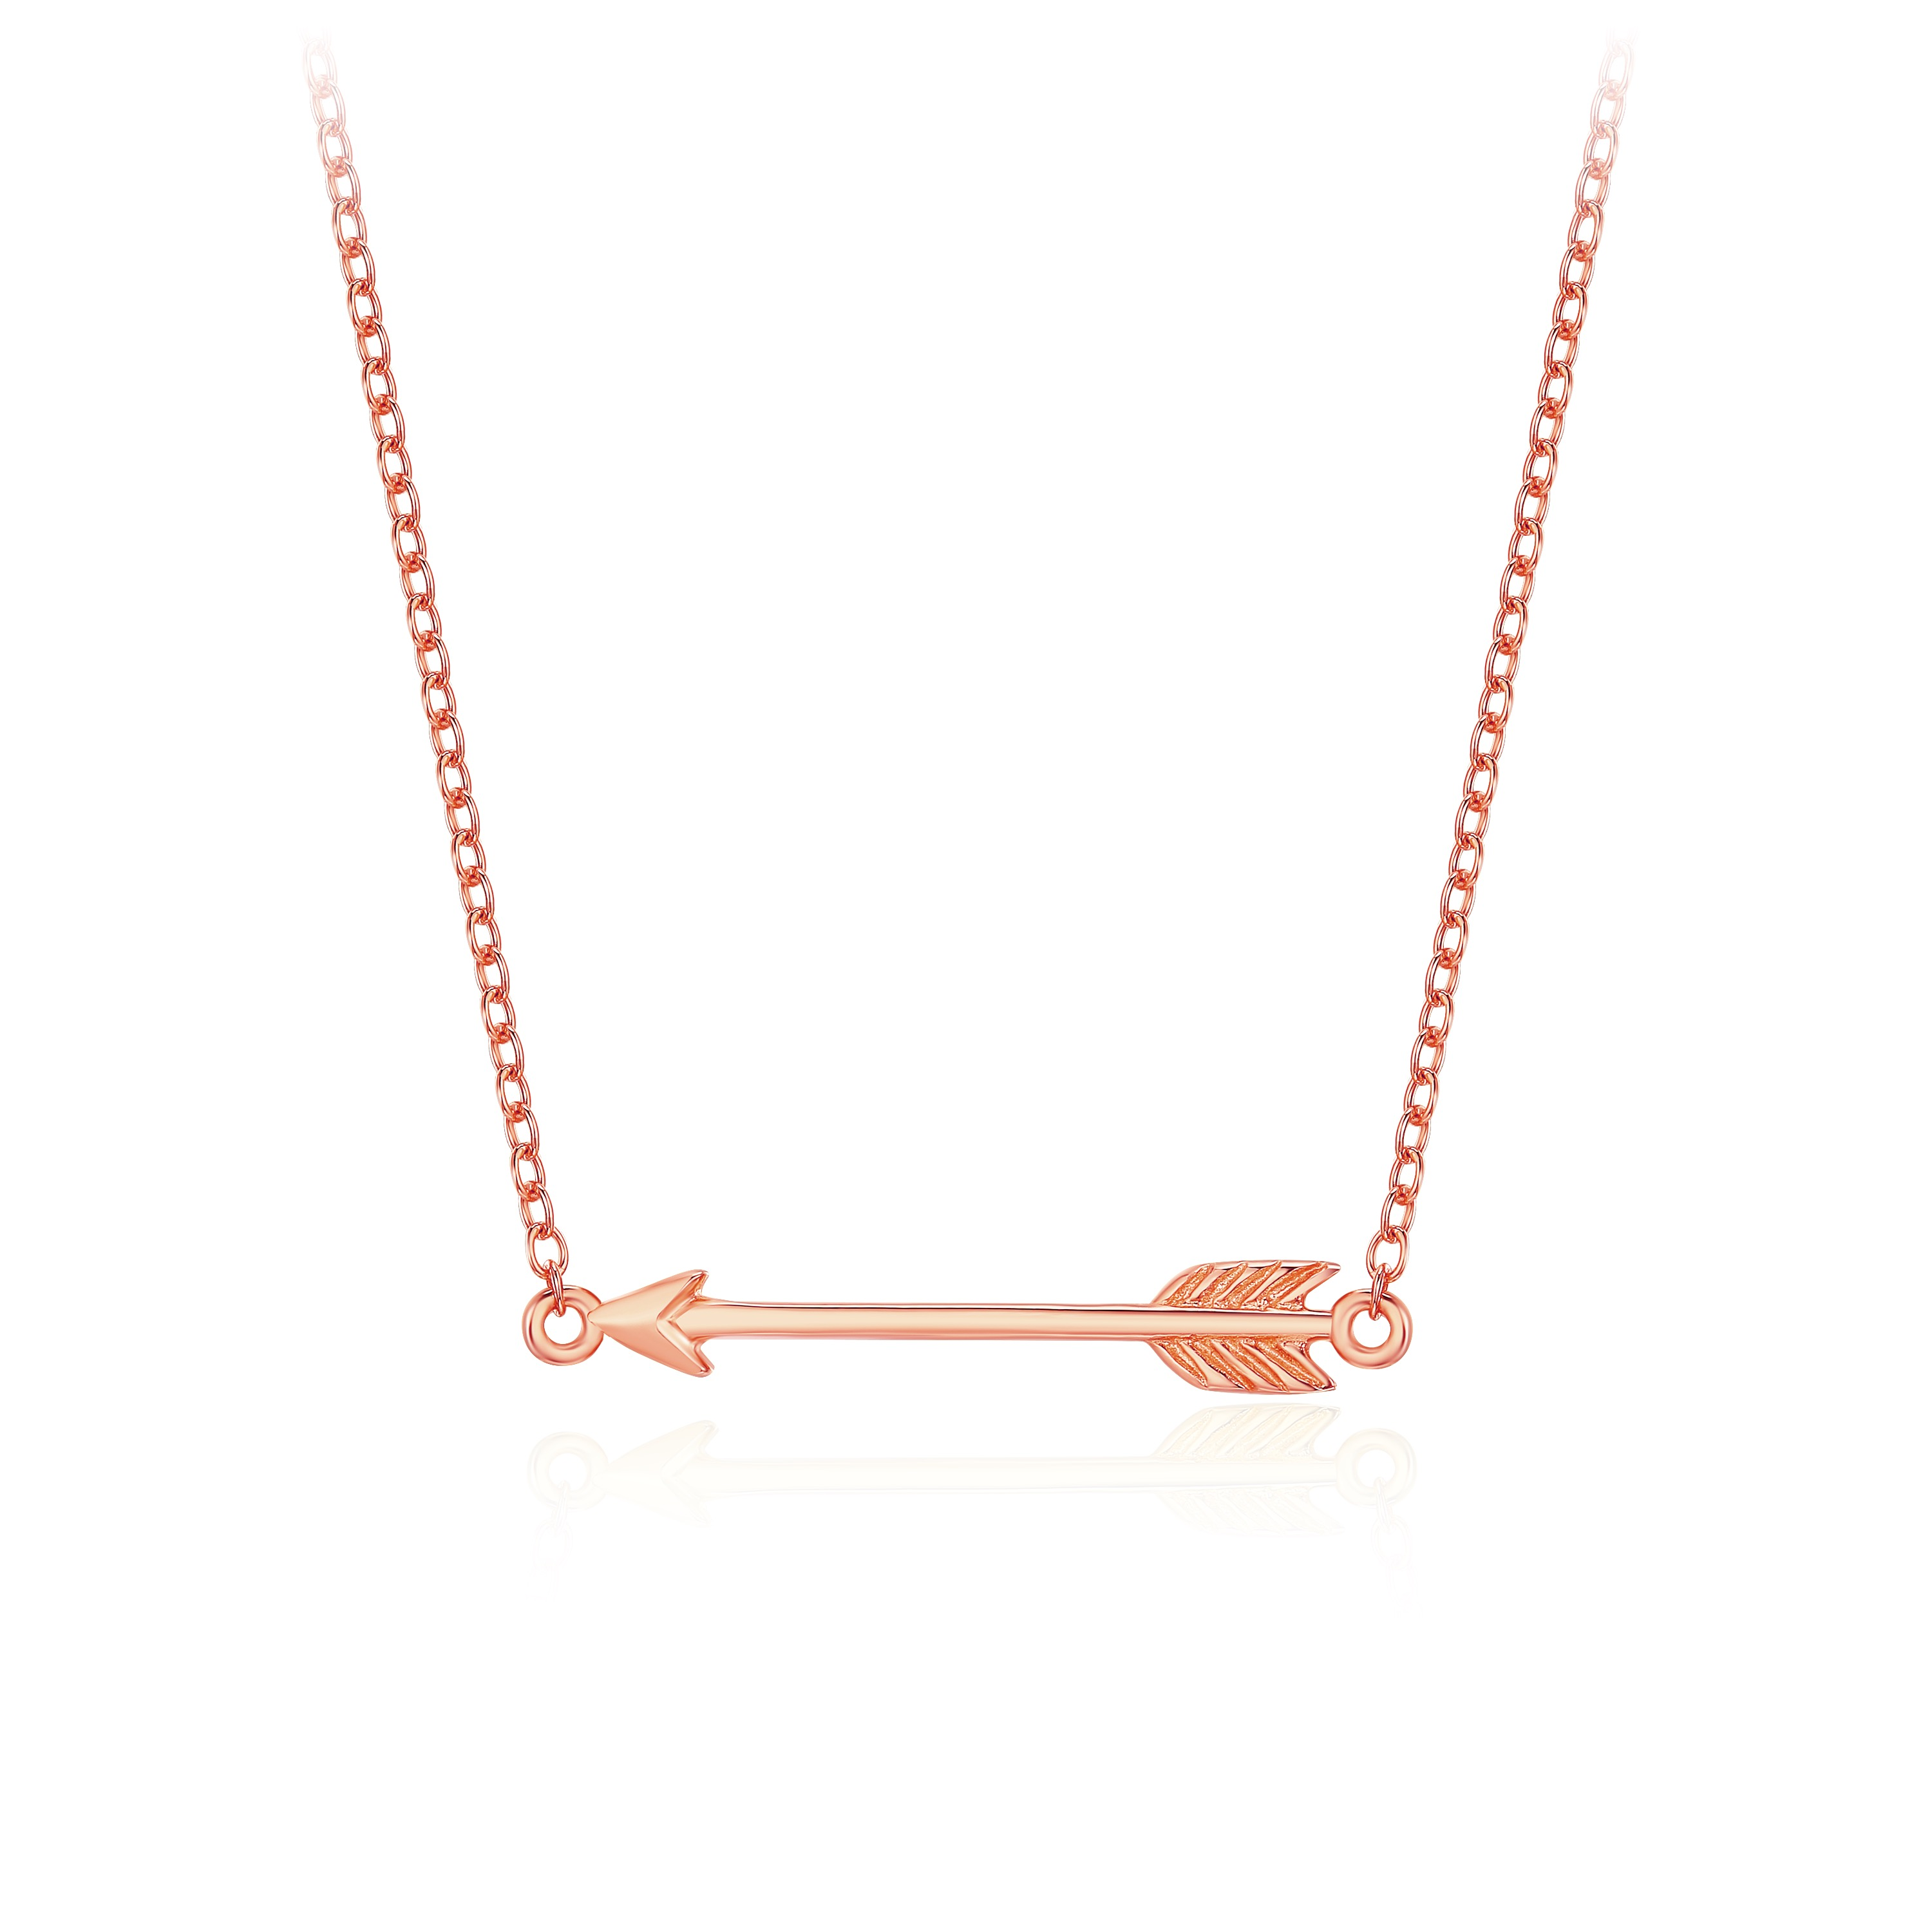 dbdd4f56c79f9 Arrow Necklace in Sterling Silver Rose Gold Plated